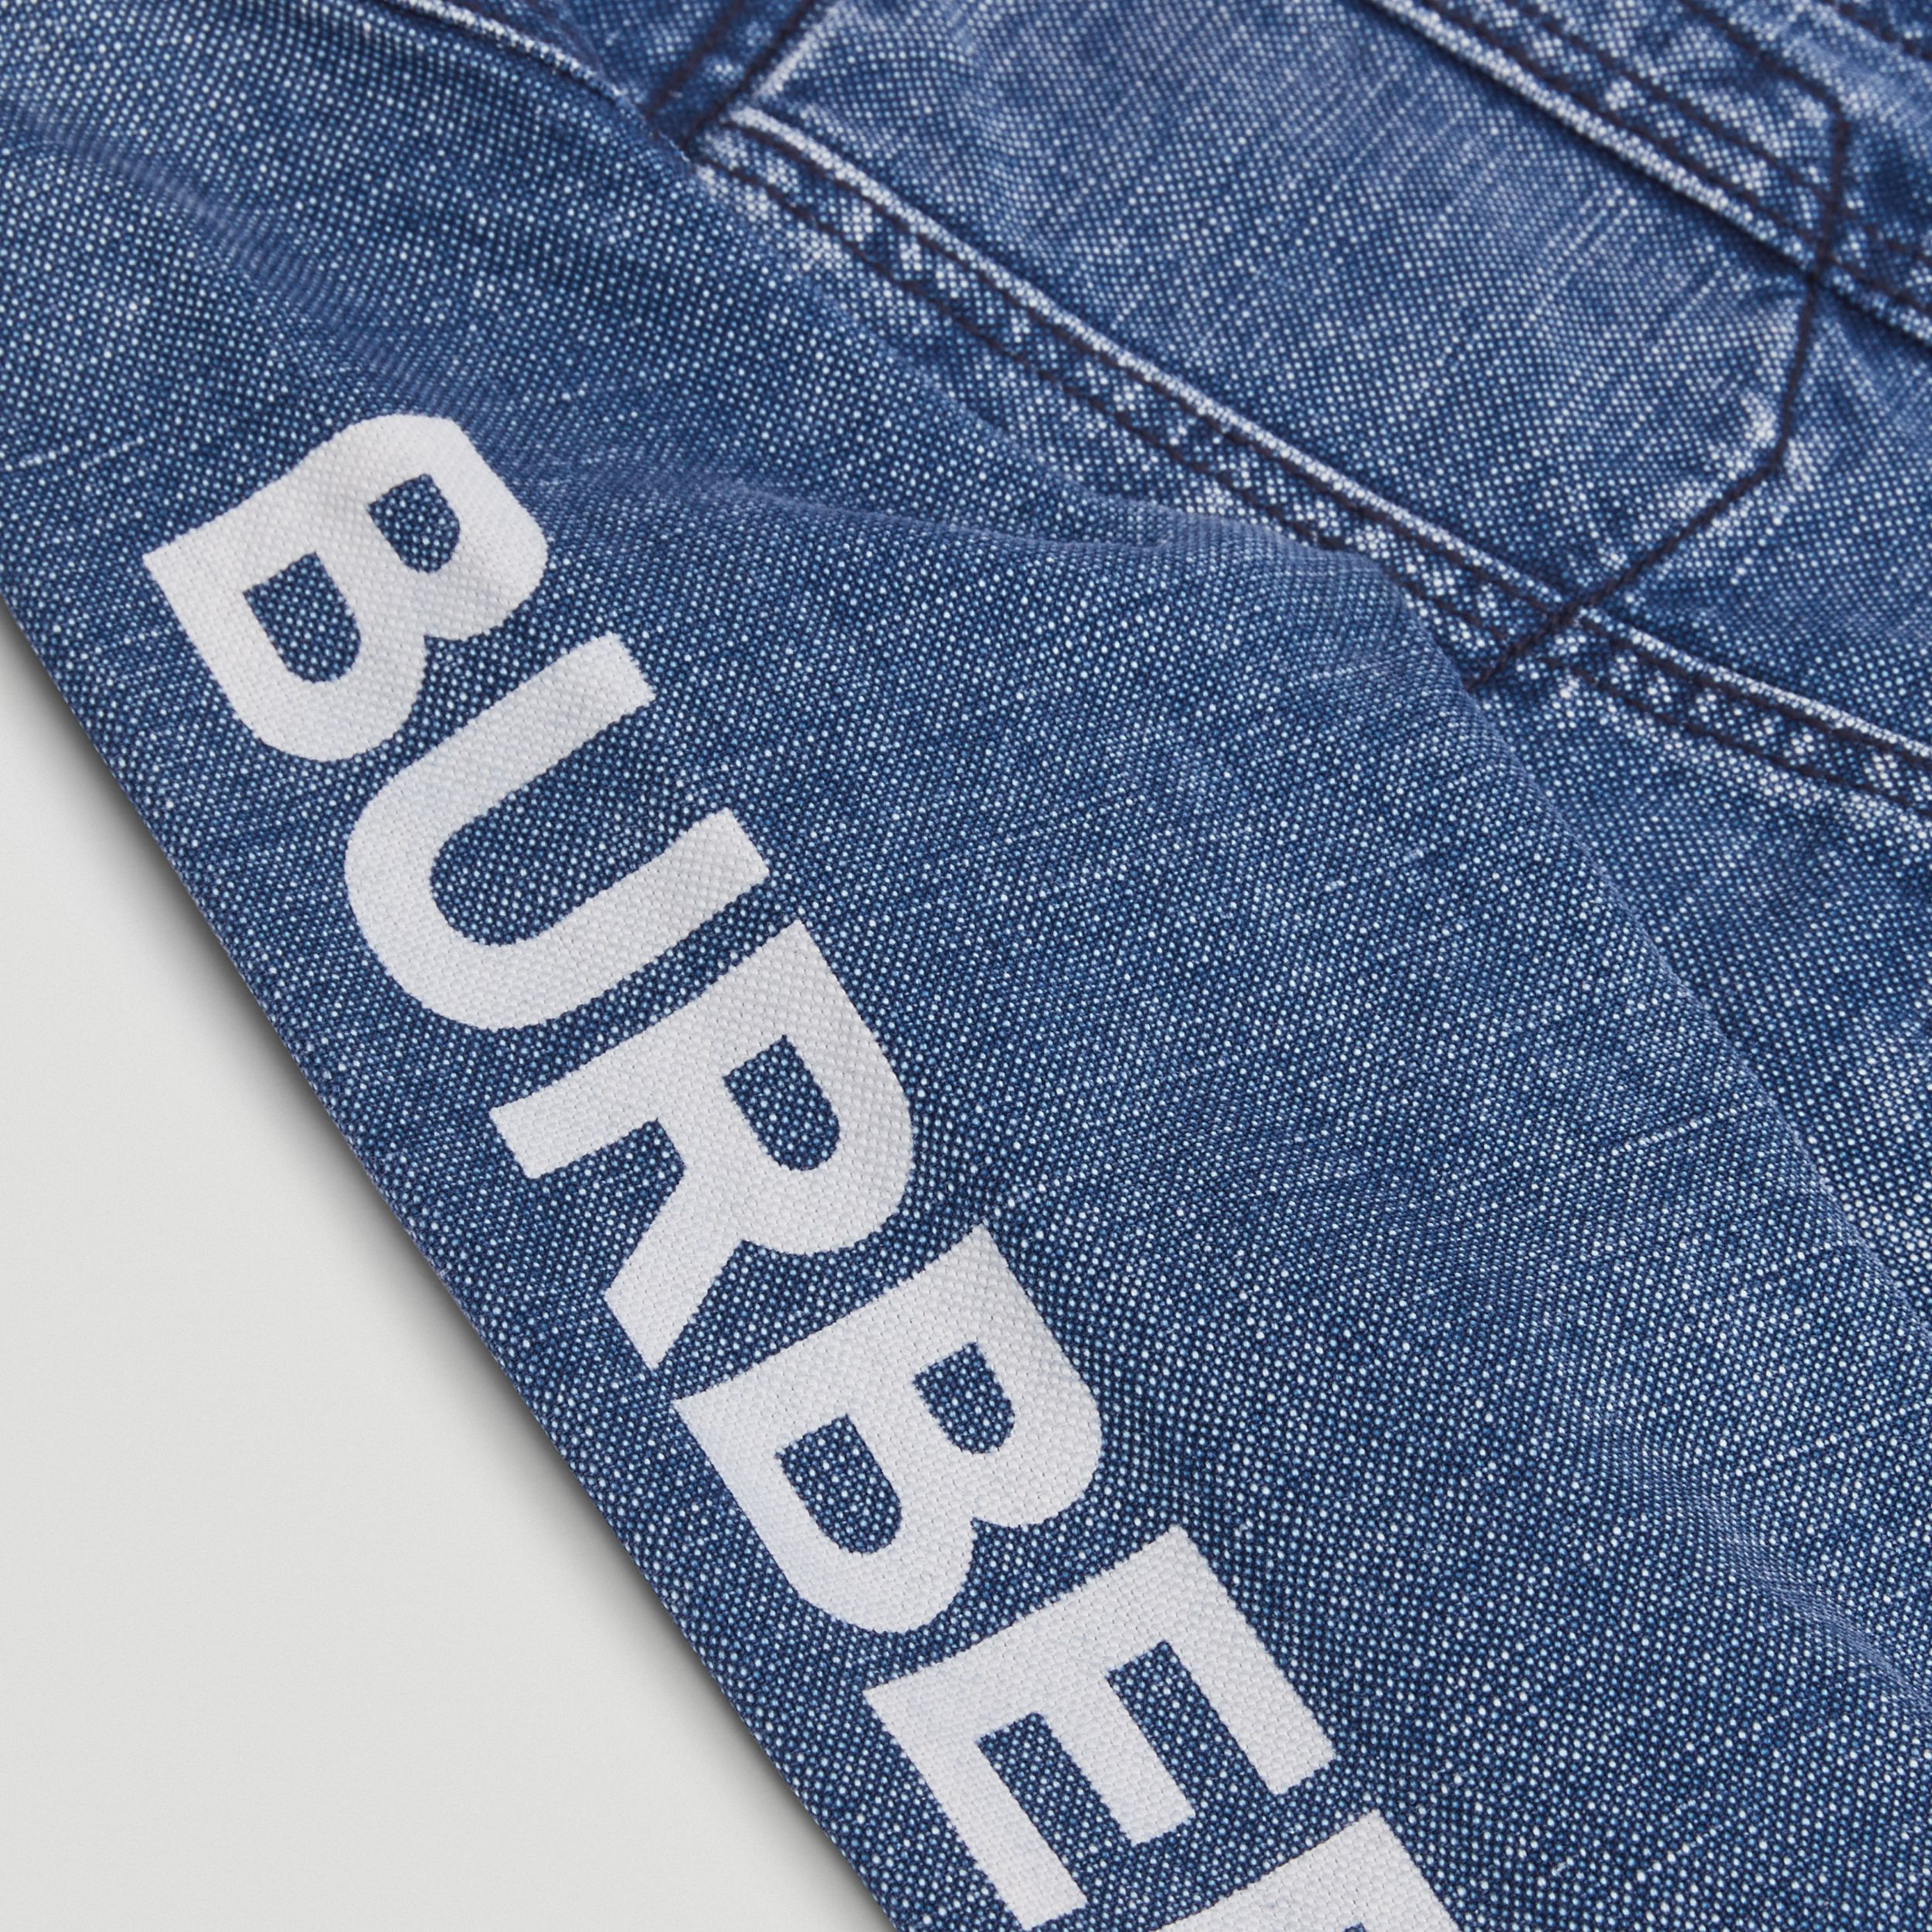 Logo Print Japanese Denim Jacket in Indigo | Burberry - 2